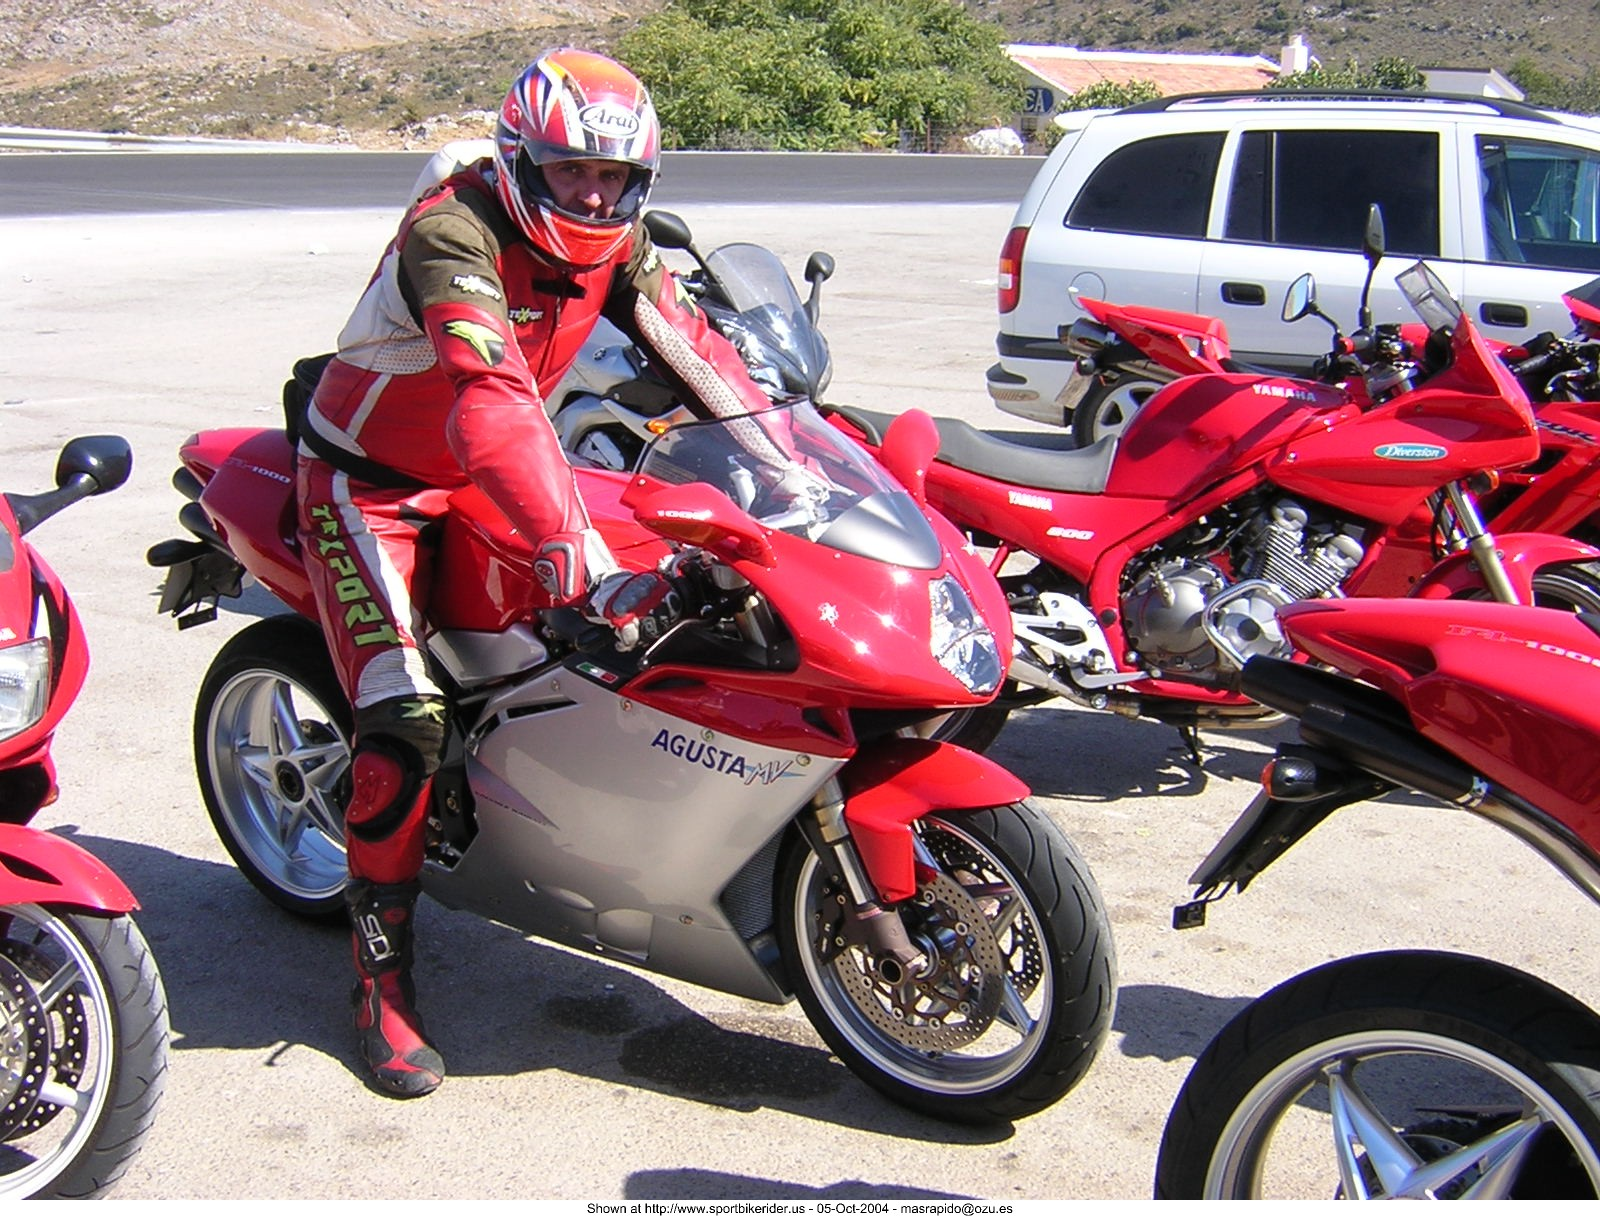 MV Agusta F4 1000 S 2004 images #113491